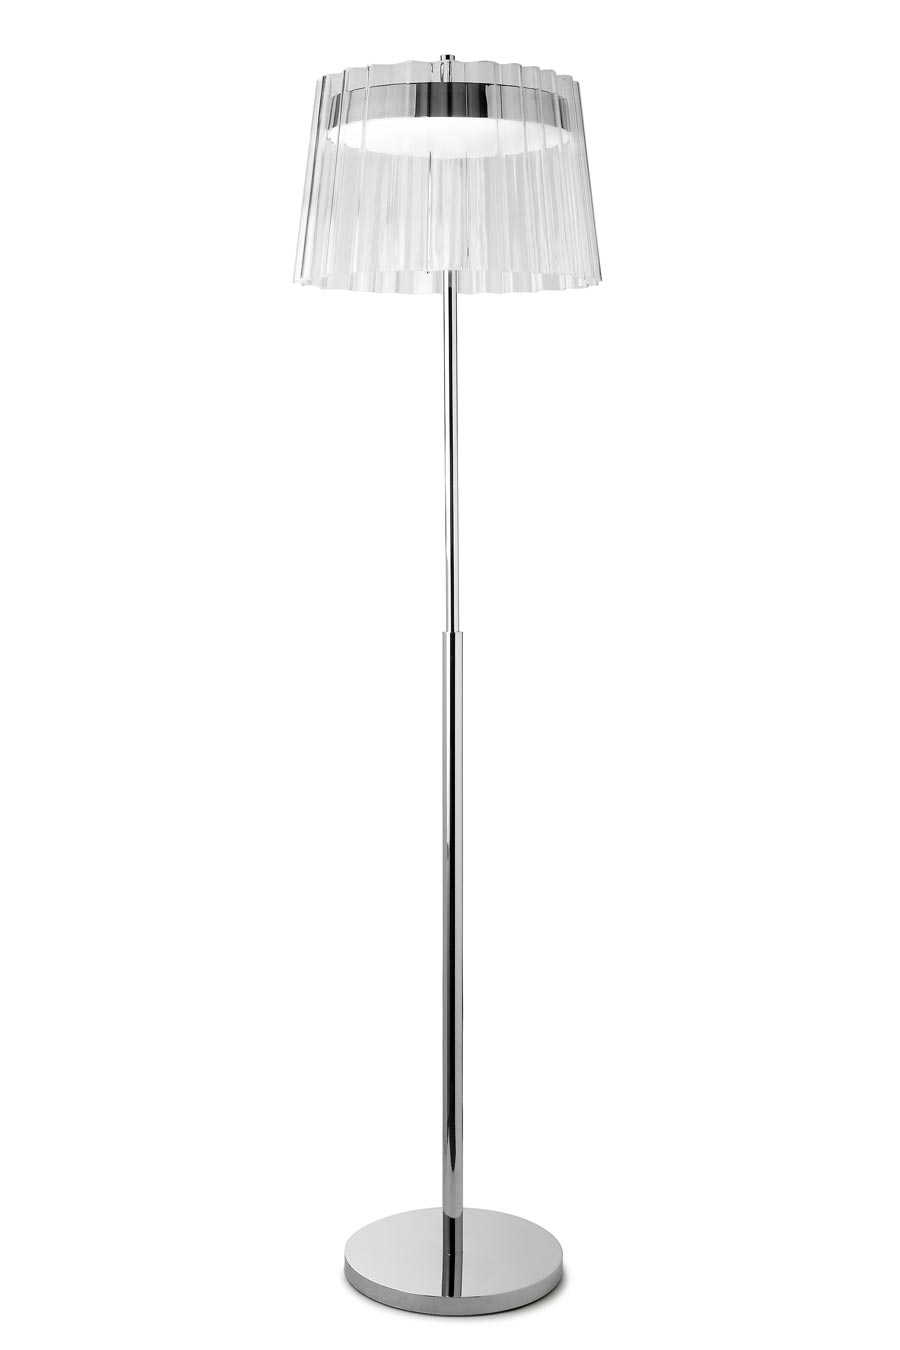 lampadaire design transparent